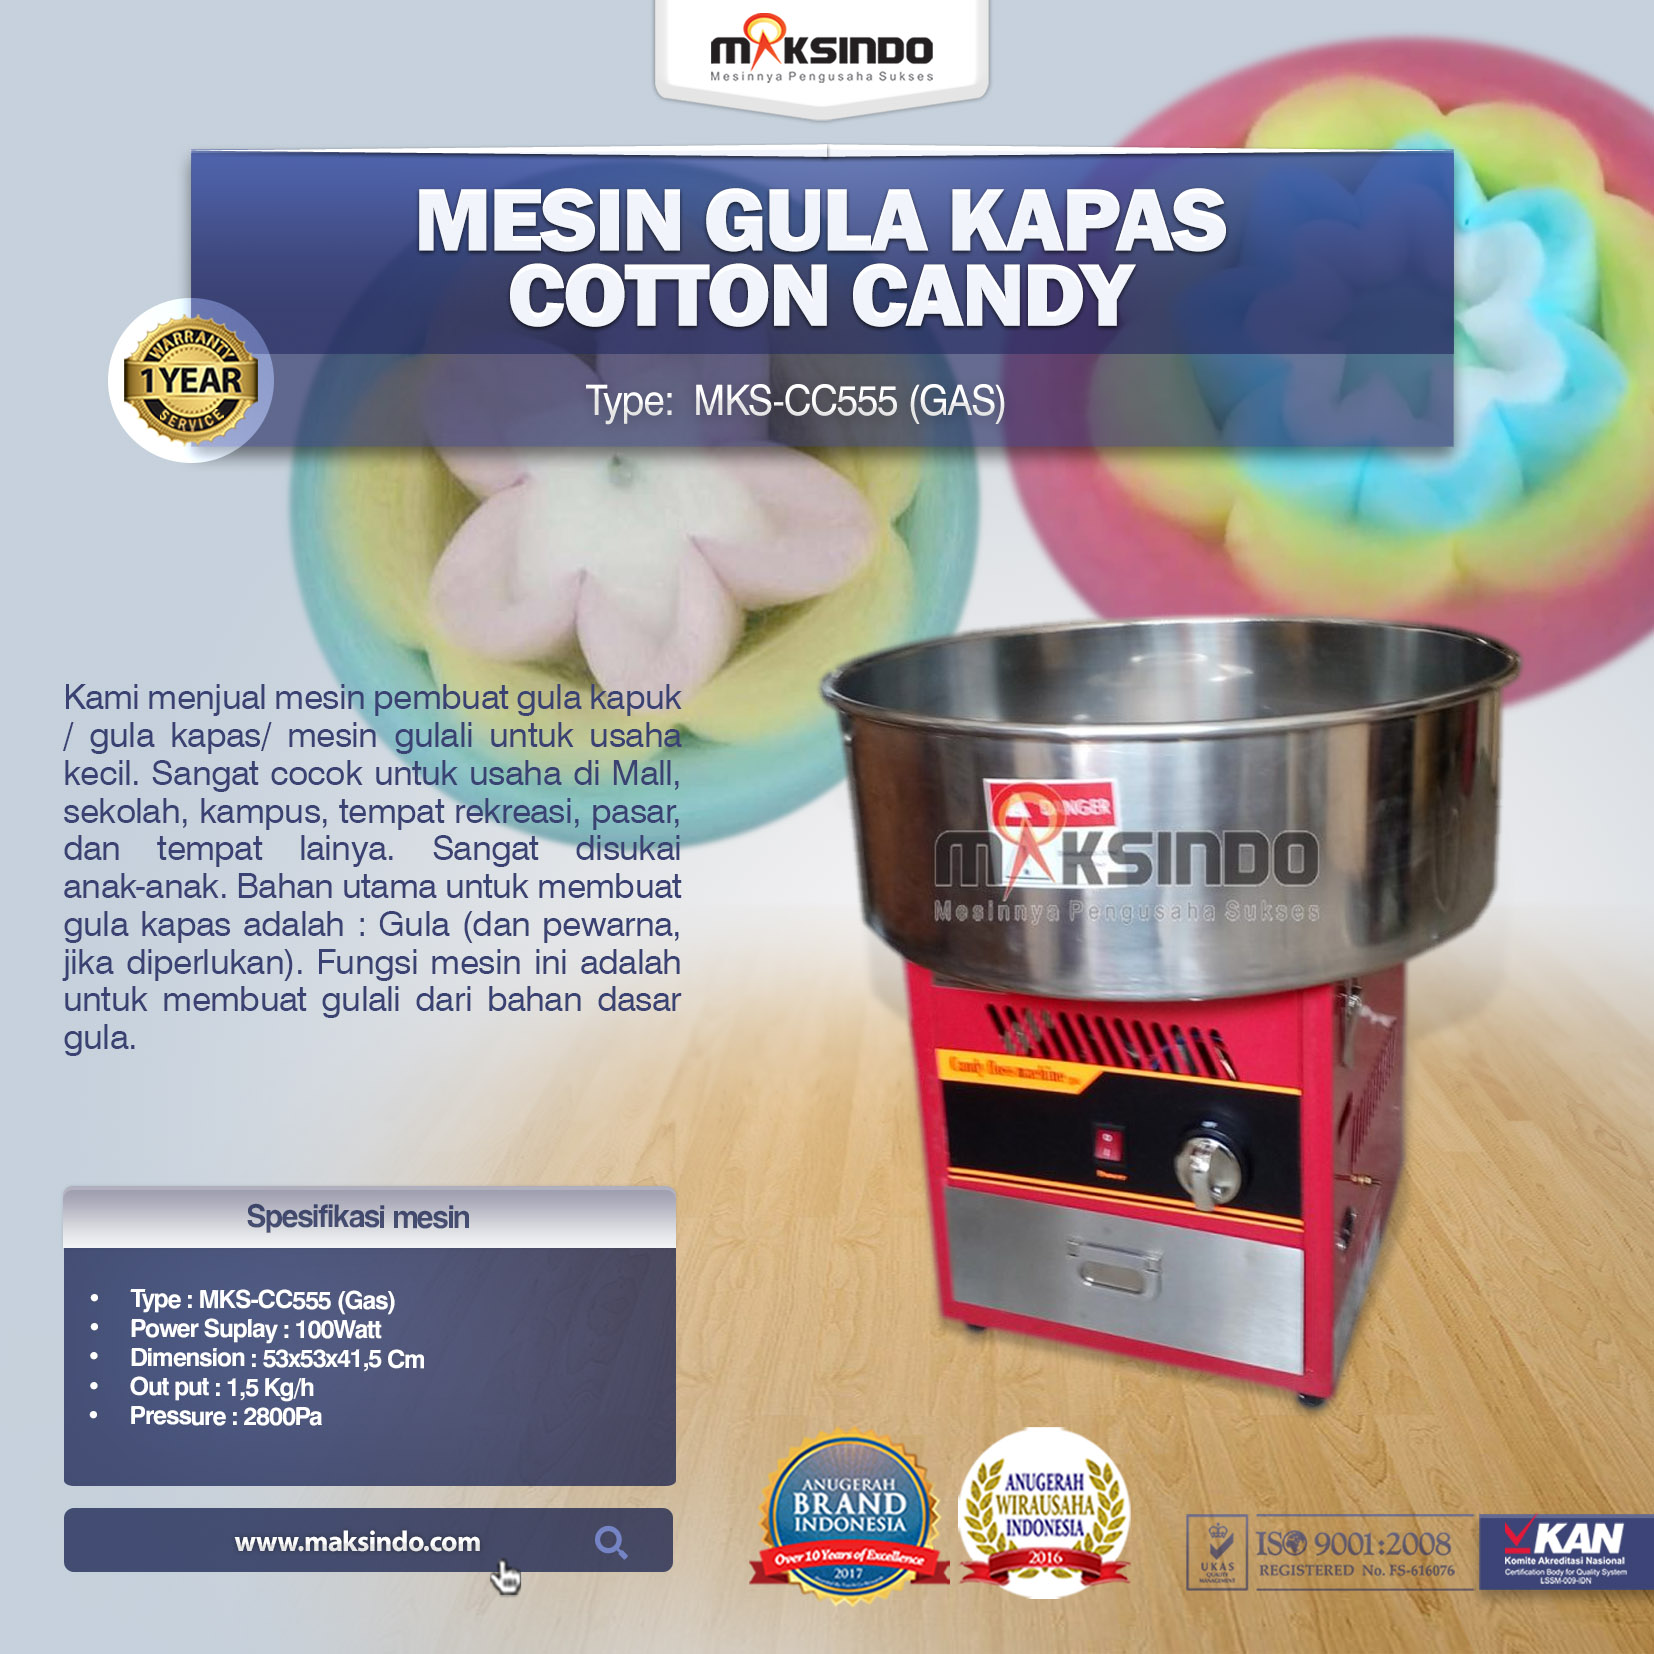 Mesin GULALI Cotton Candy MKS-CC555 (Gas)